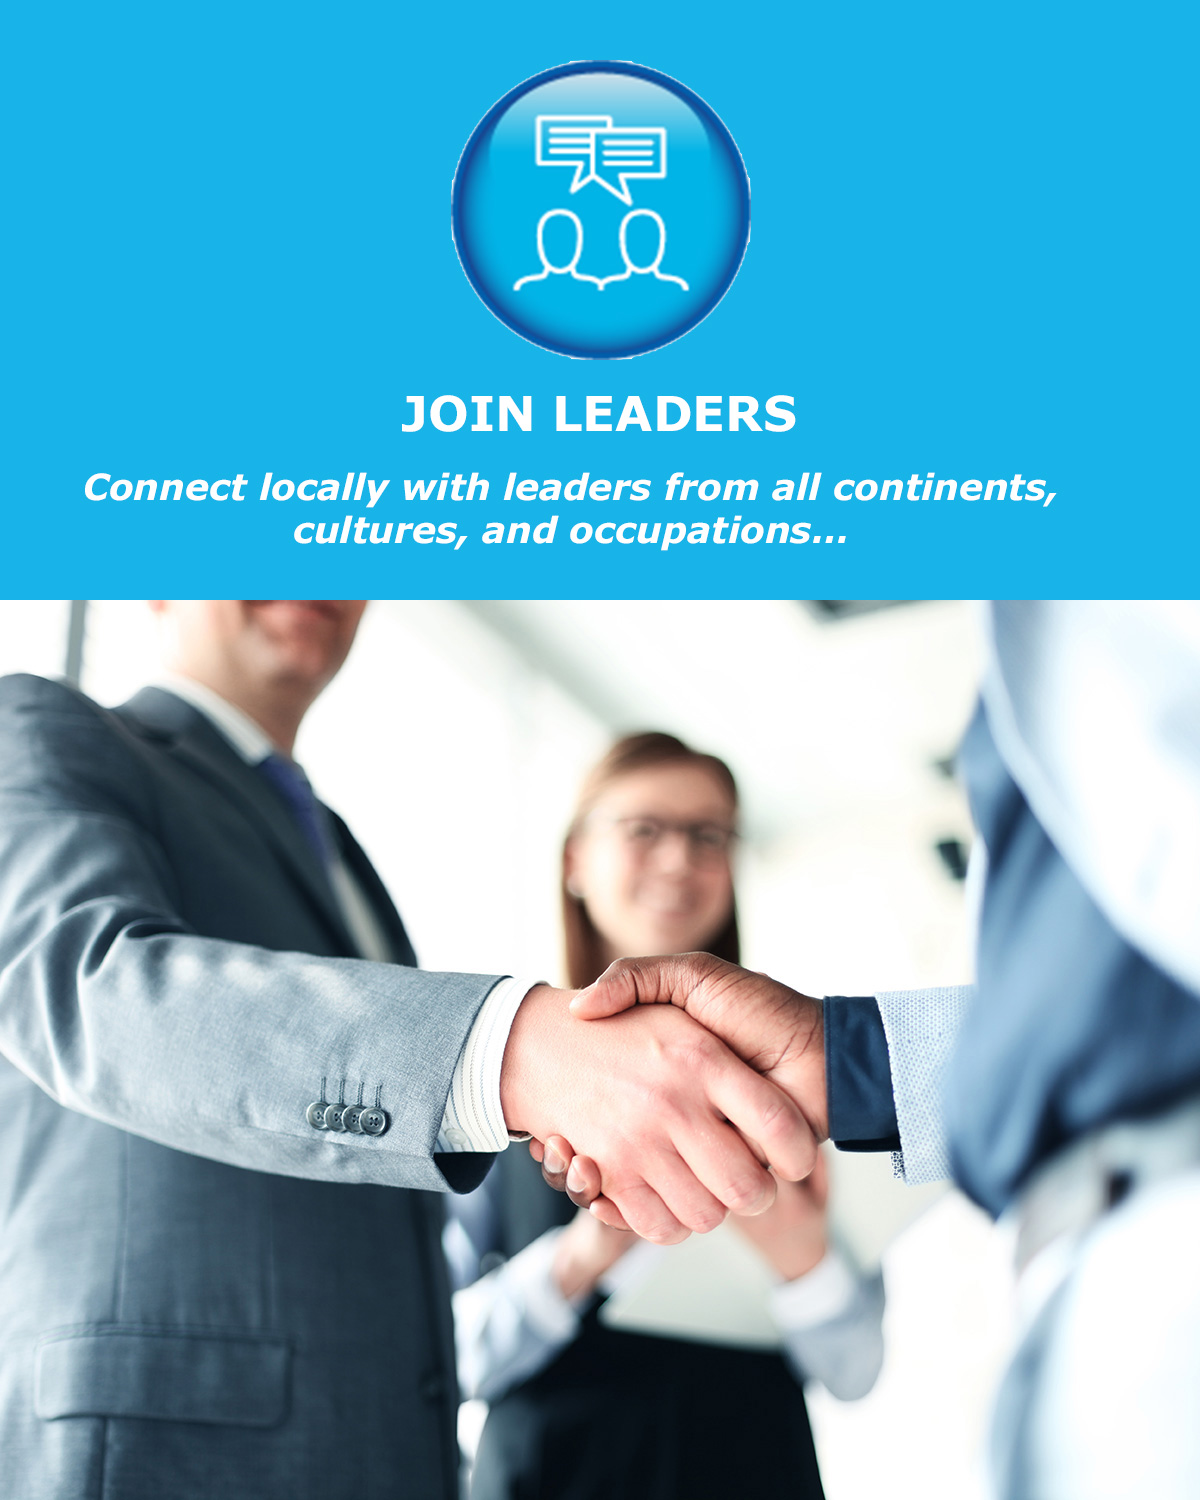 JOIN LEADERS